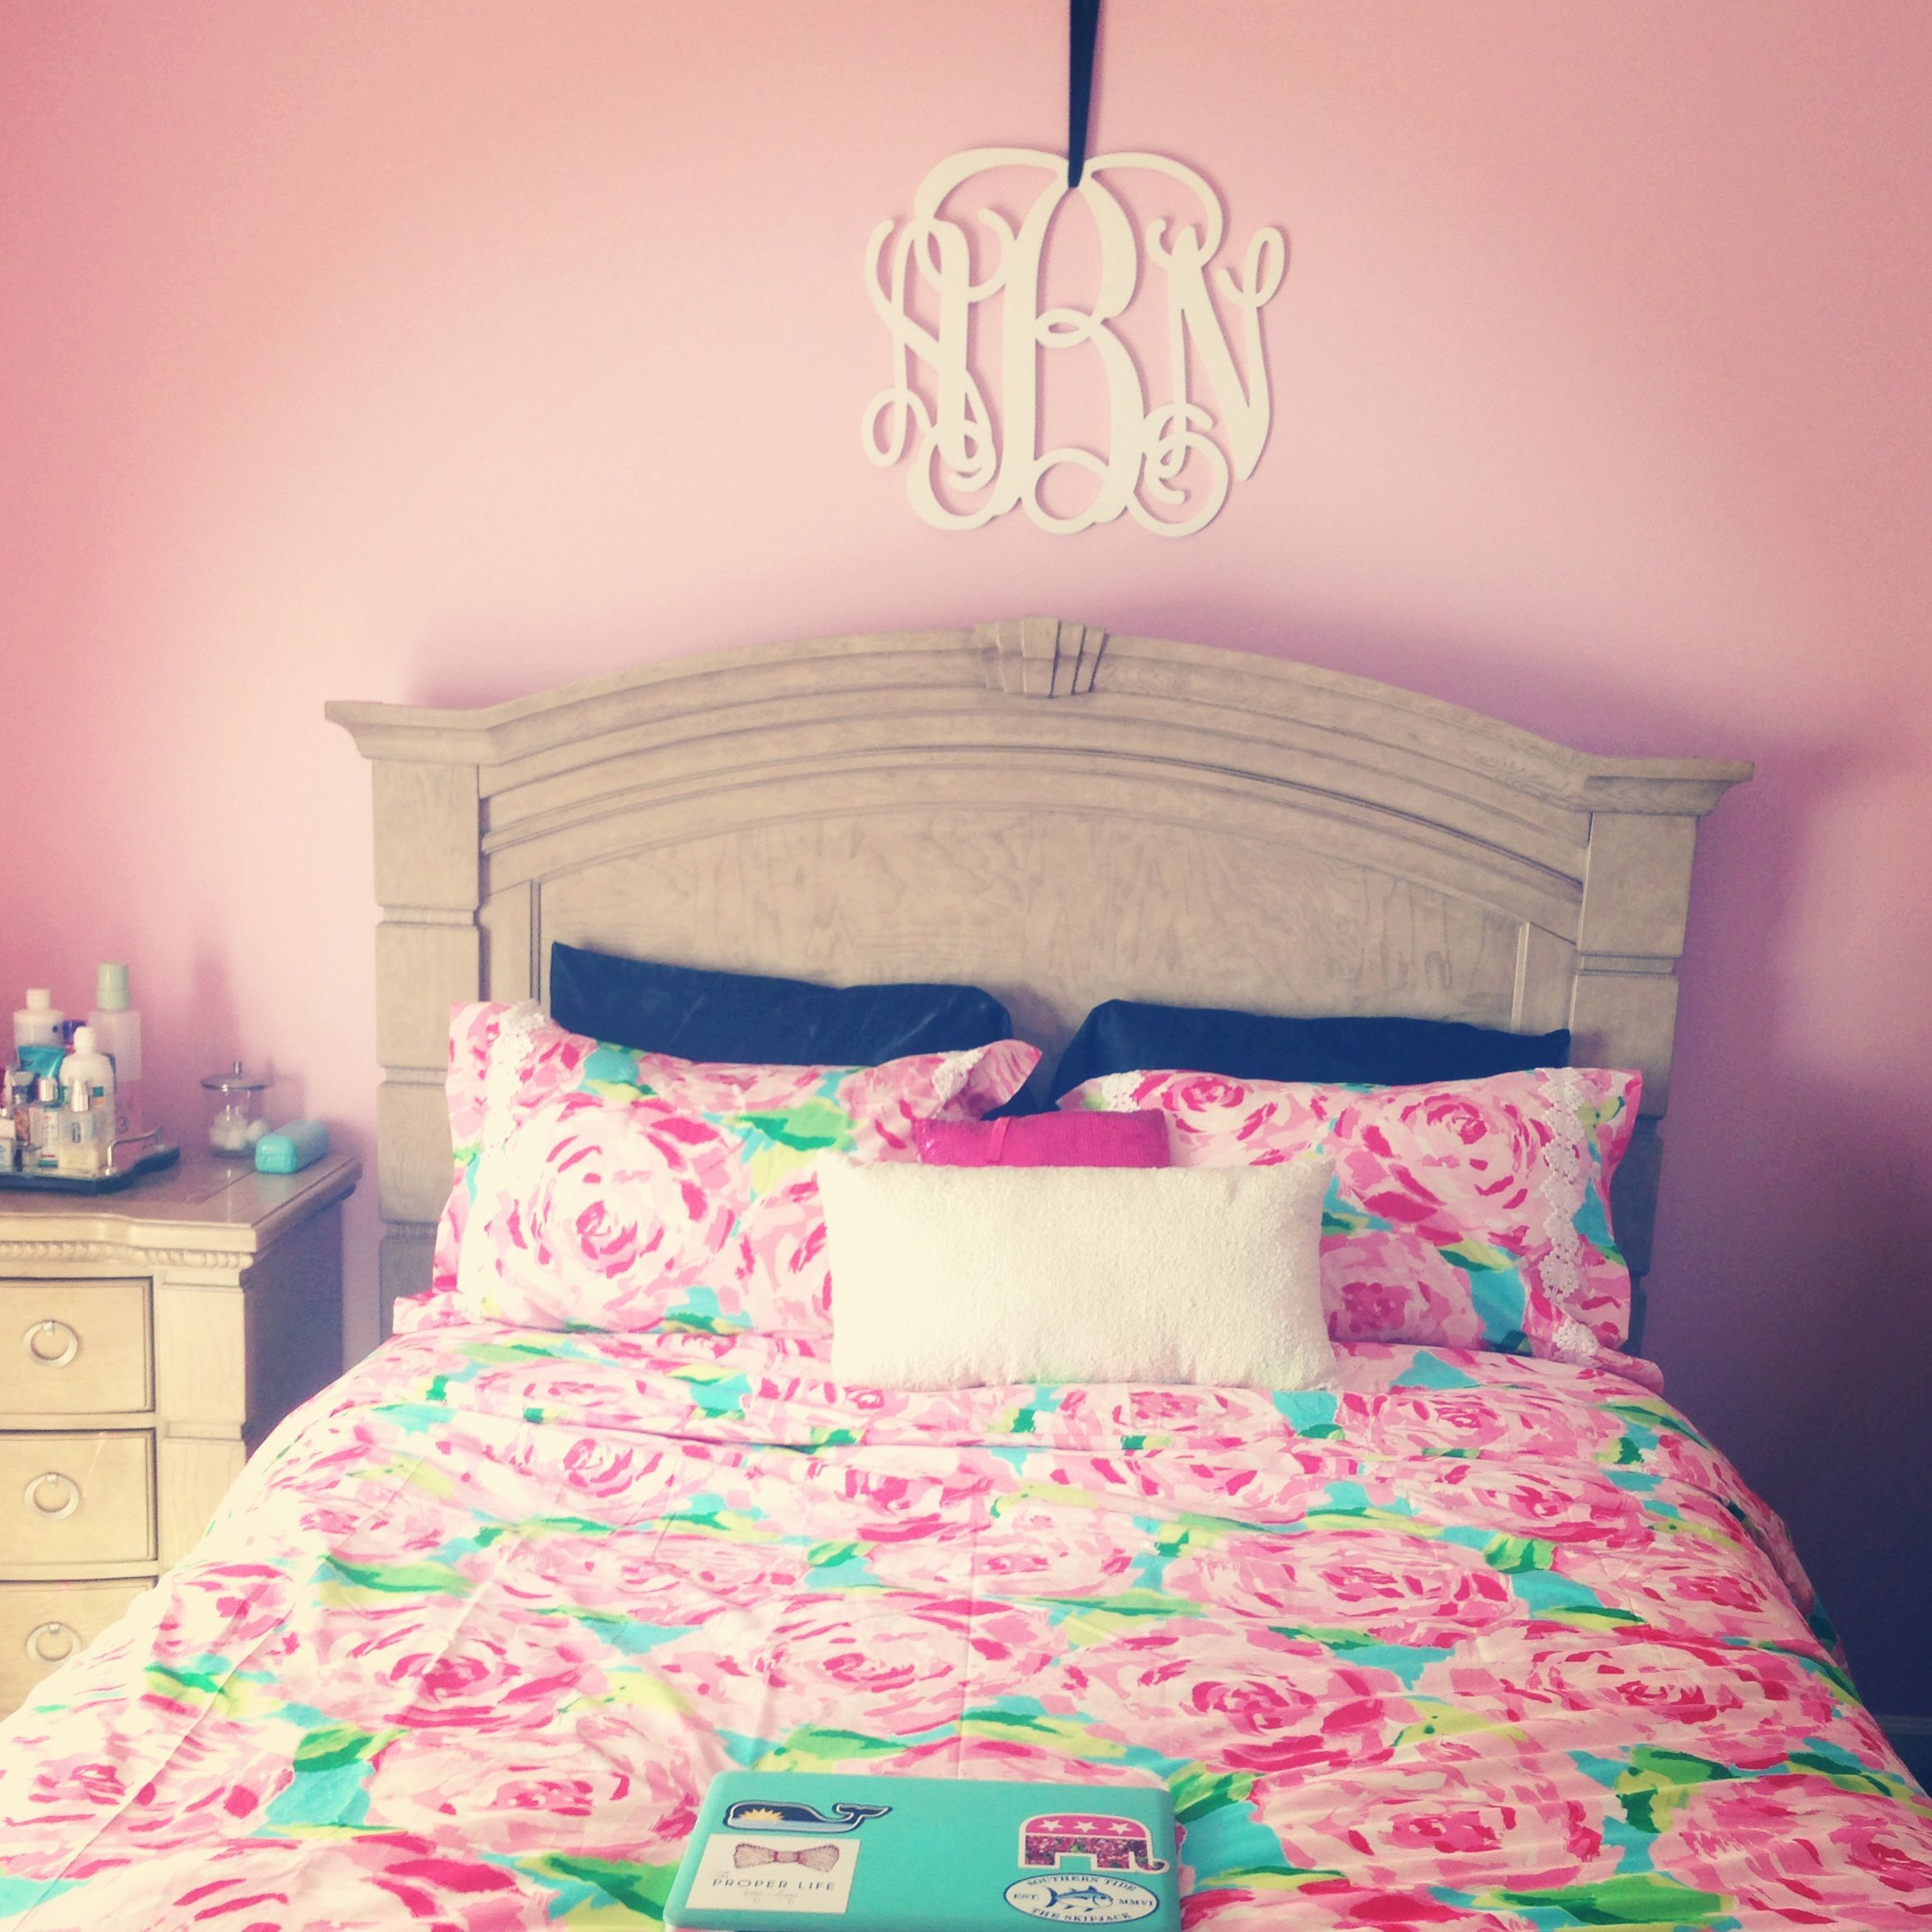 lilly on lilly pulitzer lily pulitzer and preppy lilly pulitzer bedding and pillows bedroom gorgeous lilly pullitzer bedding